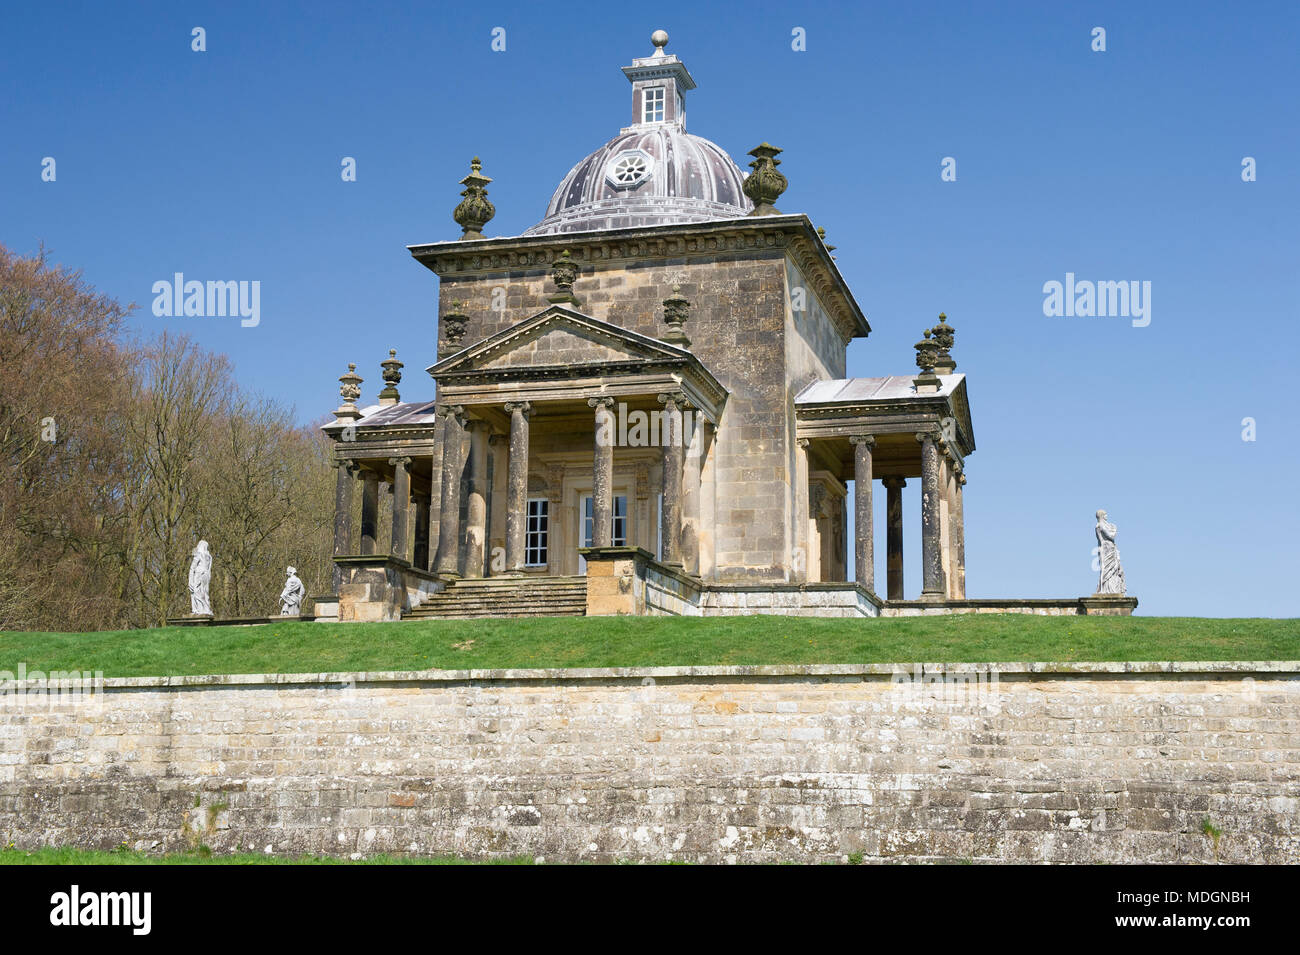 The Temple Of The Four Winds in the grounds of Castle Howard in North Yorkshire - Stock Image